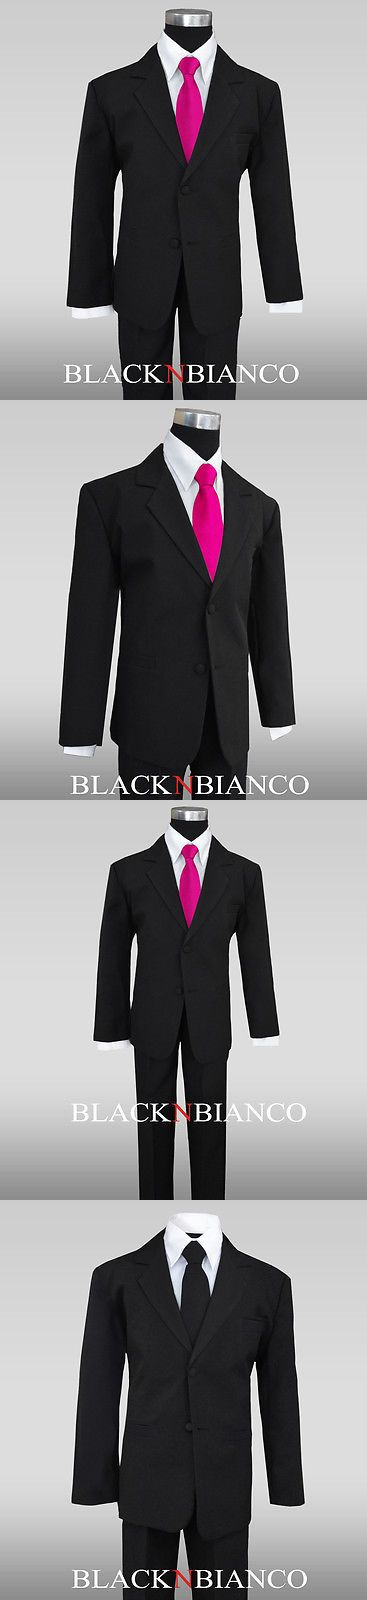 Boys Formal Occasion 105520: Formal Black Suit For Boys With A Pink Fuchsia Long Neck Tie Kids All Sizes -> BUY IT NOW ONLY: $32.99 on eBay!